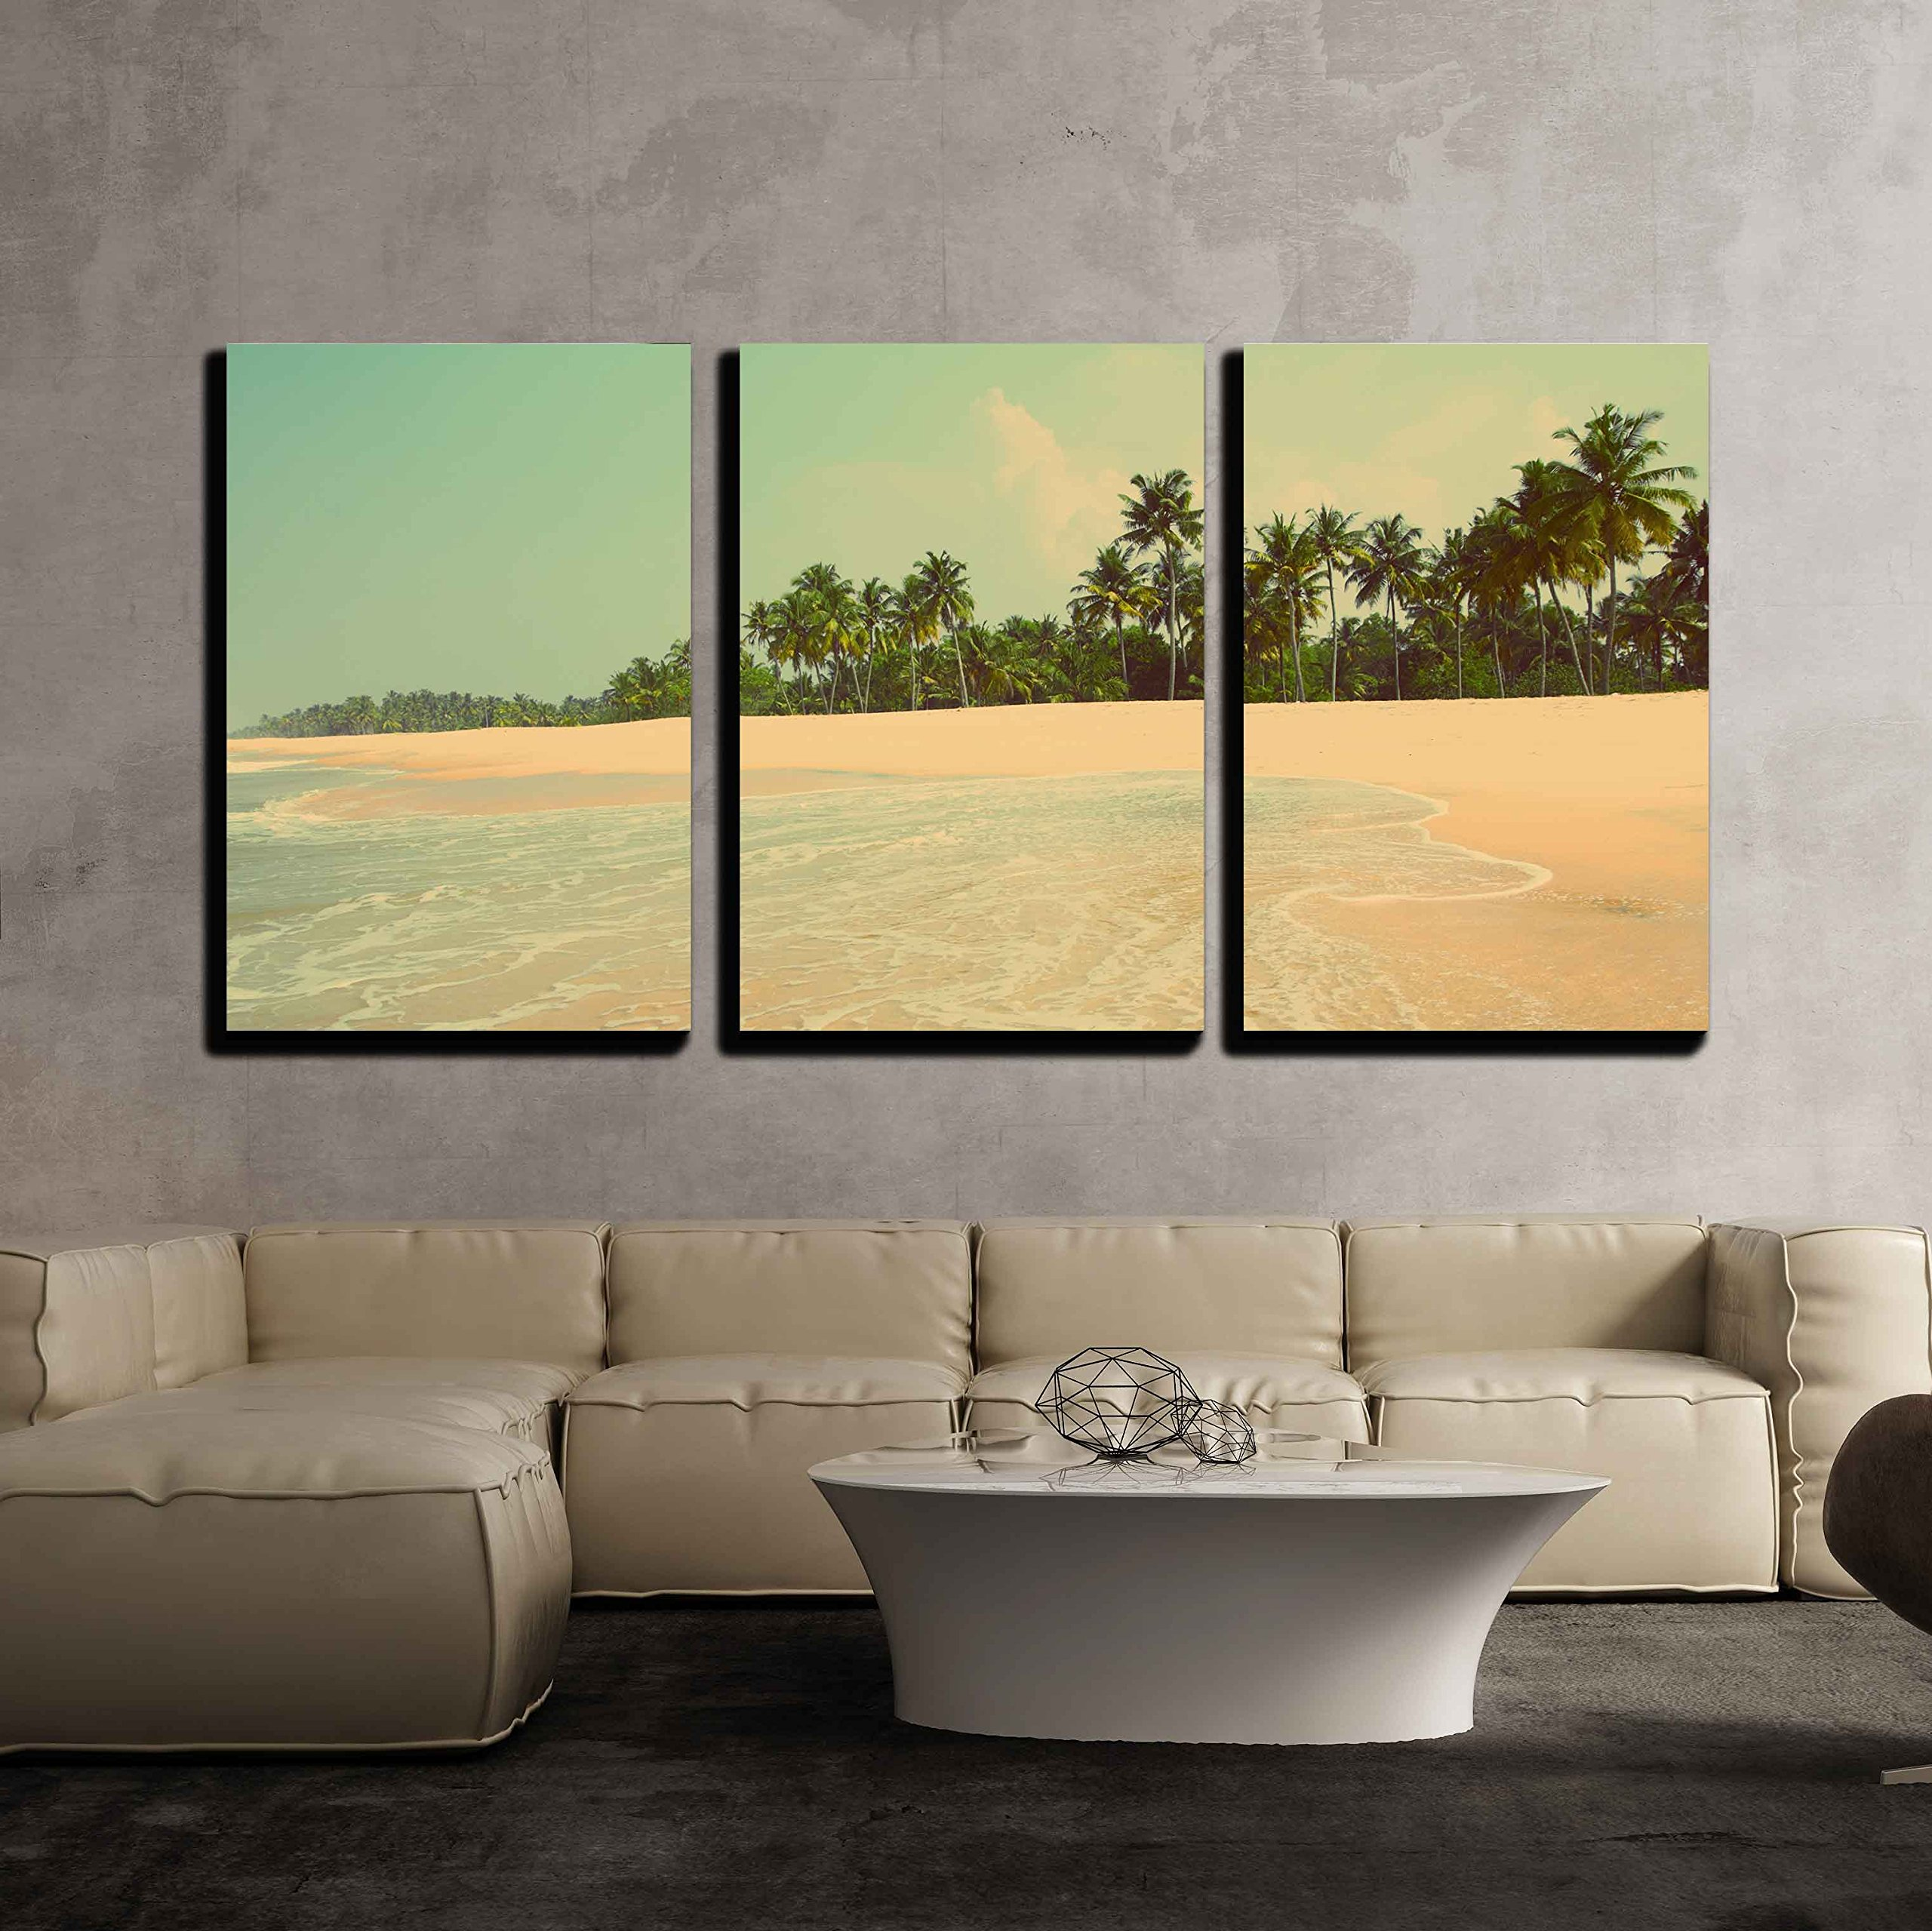 wall26 - 3 Piece Canvas Wall Art - beautiful beach landscape in India - vintage retro style - Modern Home Decor Stretched and Framed Ready to Hang - 16''x24''x3 Panels